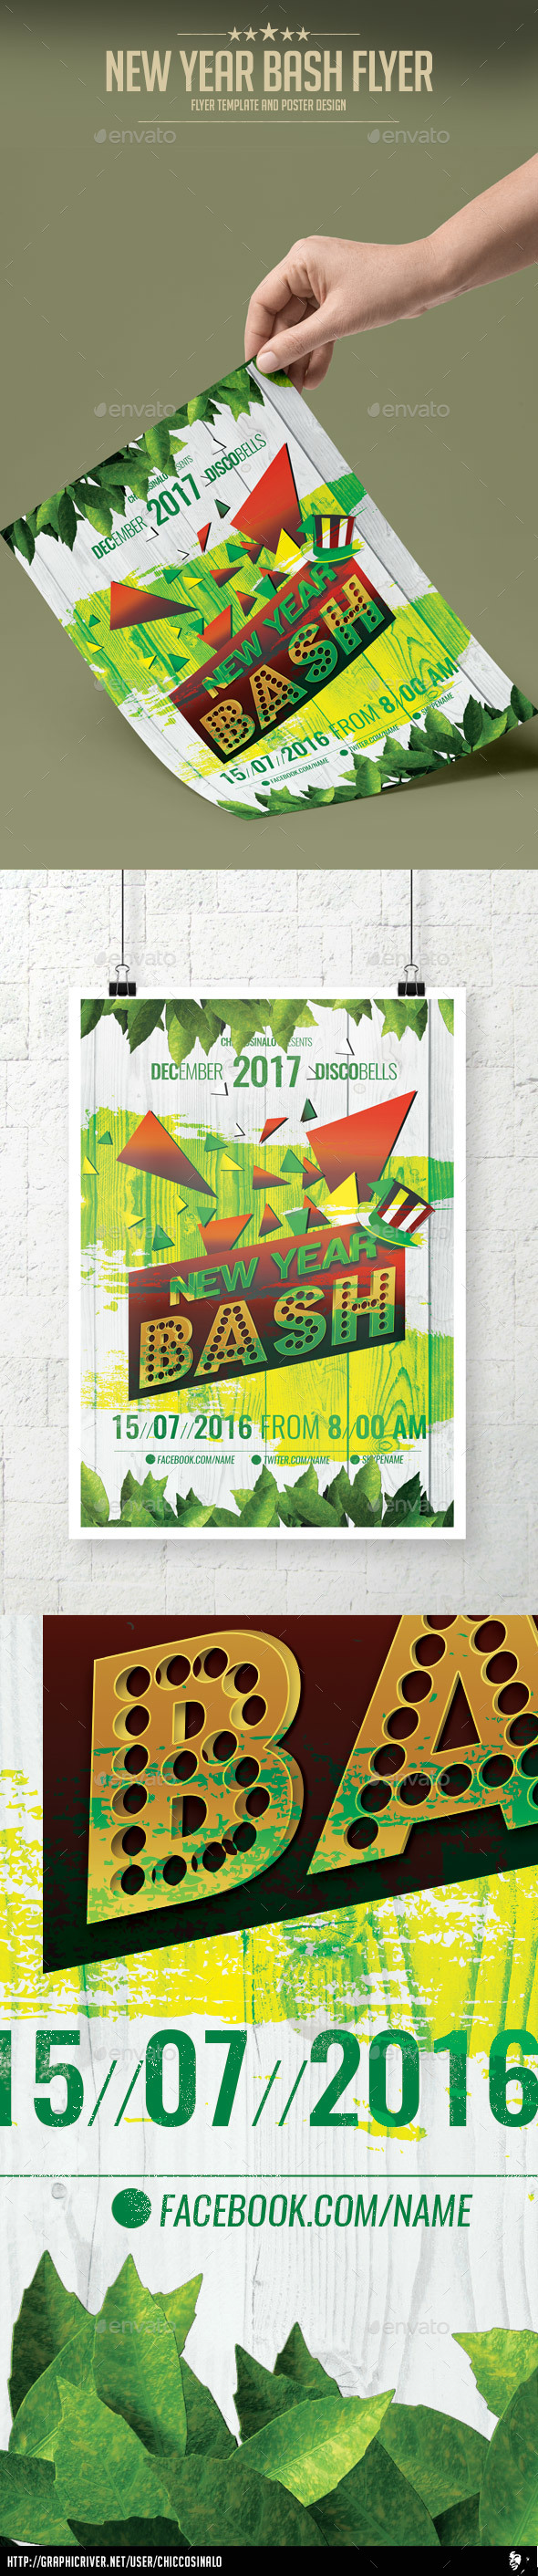 New Year Bash  Flyer Template - Events Flyers